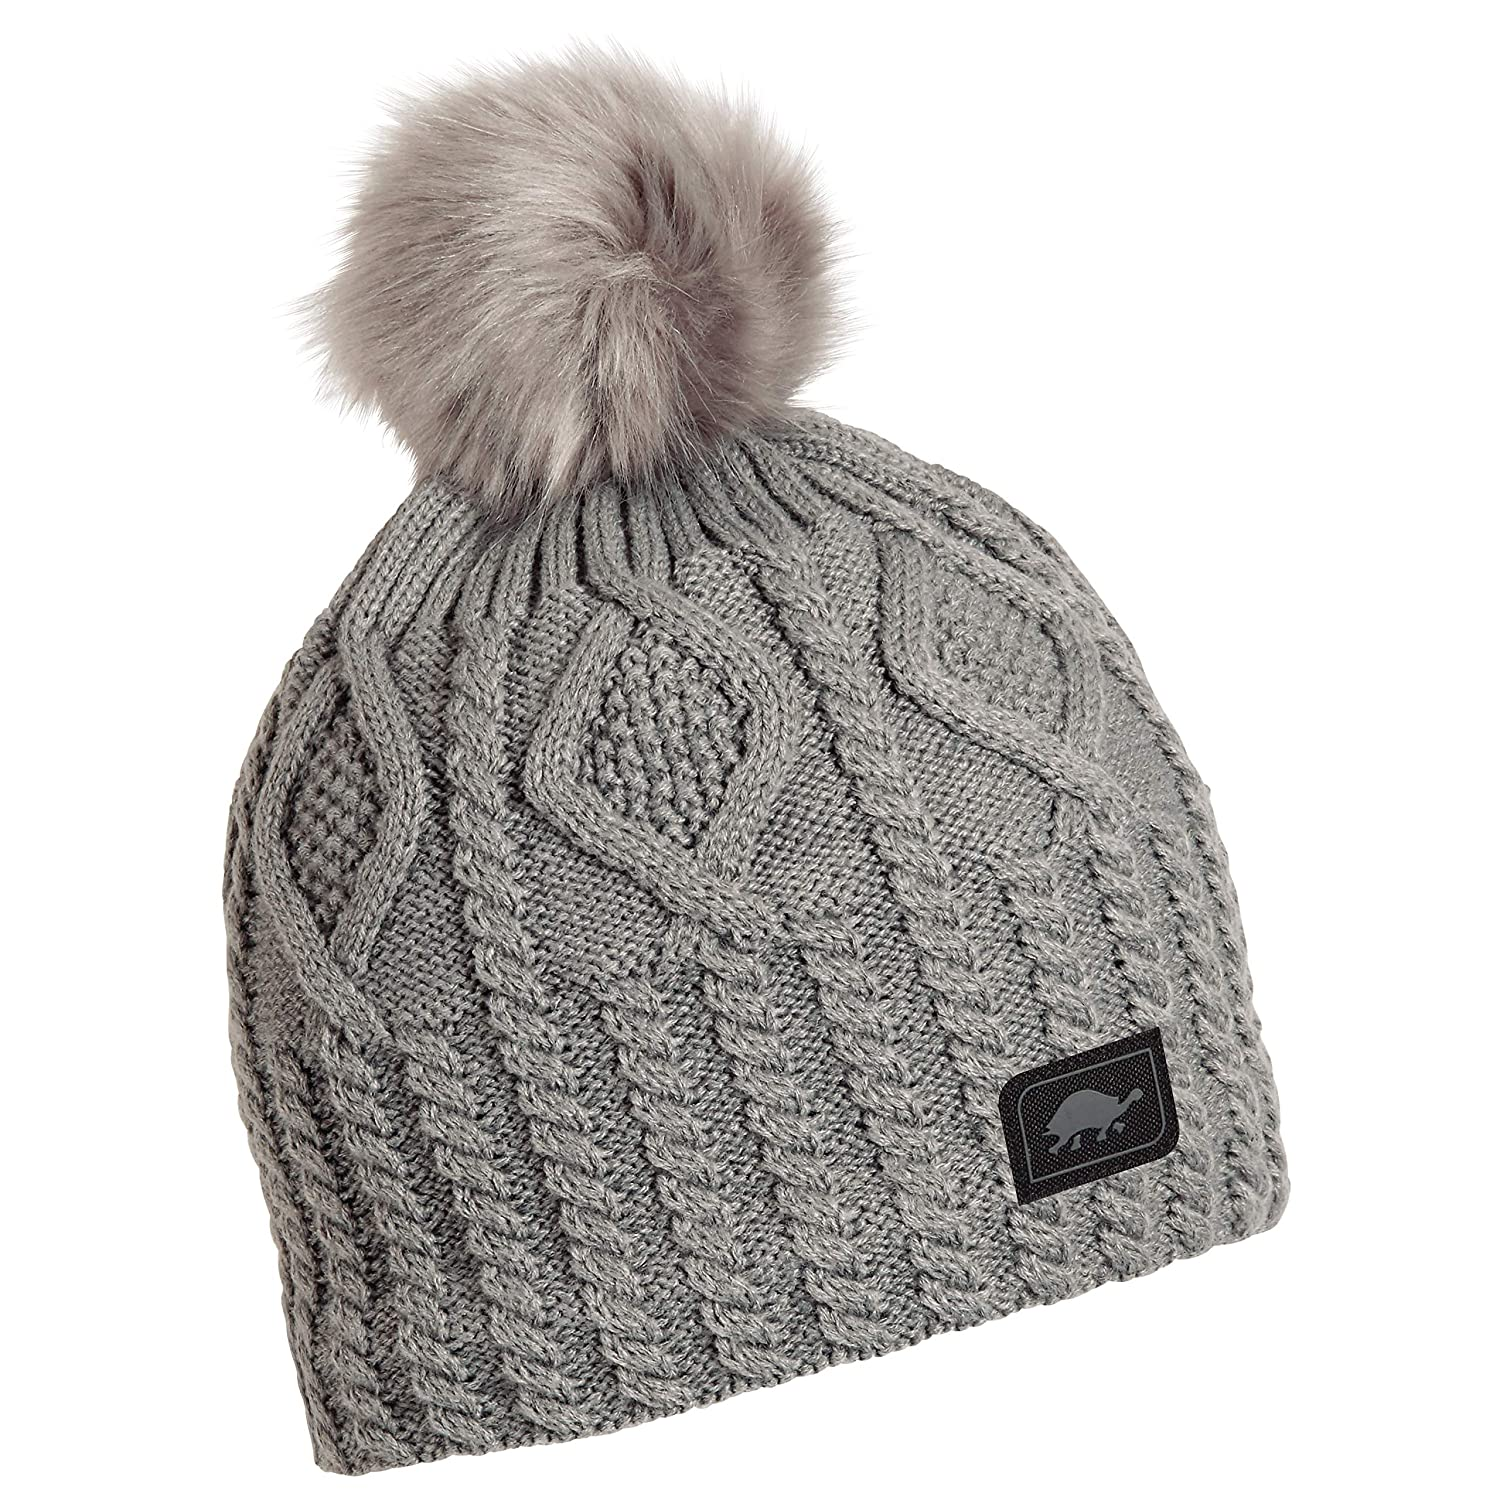 20429d6b8d5 Amazon.com   Turtle Fur Snow Globe Women s Fleece Lined Relaxed Fit Pom  Winter Hat Blue   Sports   Outdoors